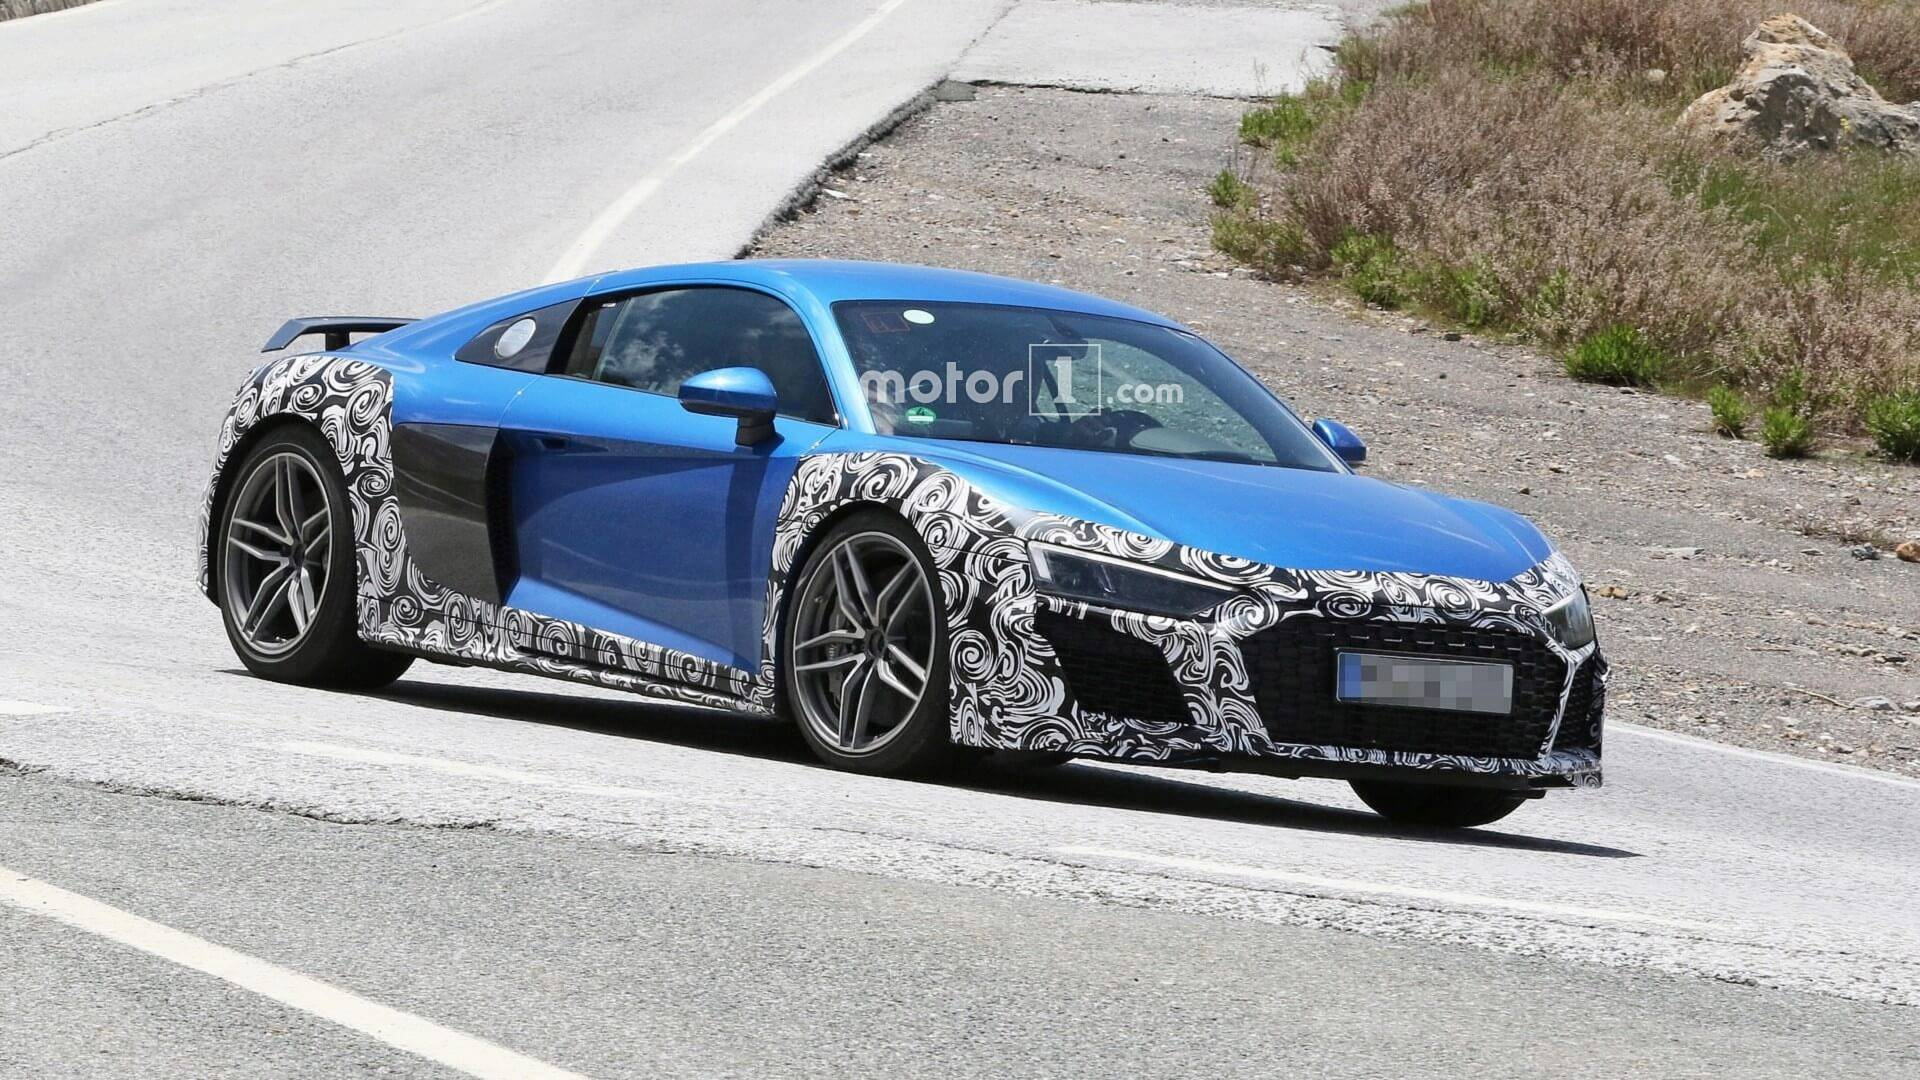 Audi R Spied With New Bumpers Oval Exhaust Tips Could Be GT Model - Audi rx8